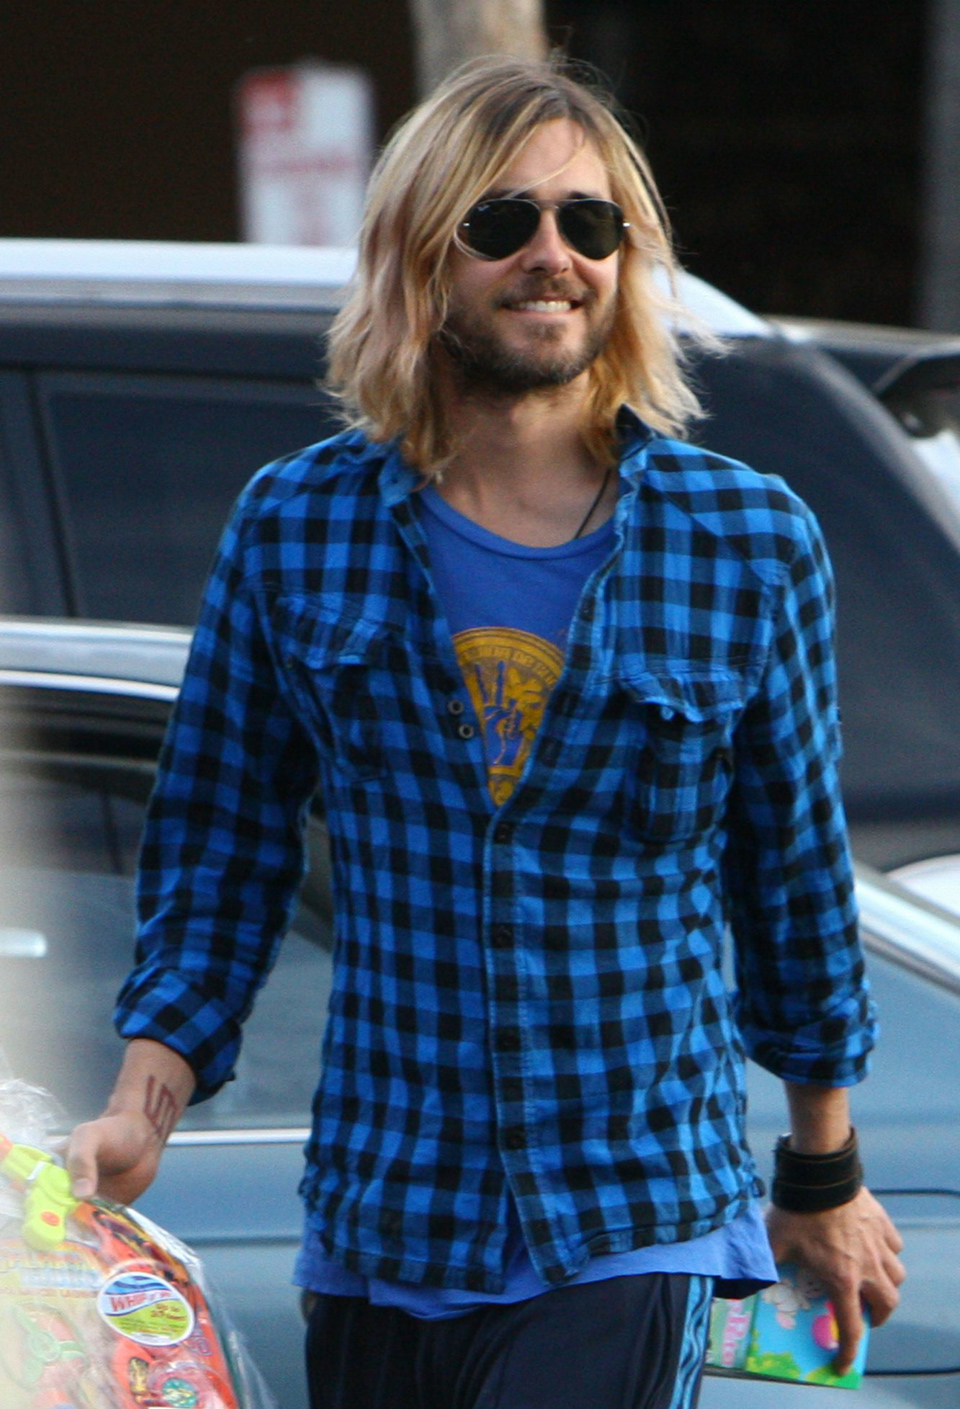 Icone de mode #18 : Kurt Cobain Jared Leto Instagram